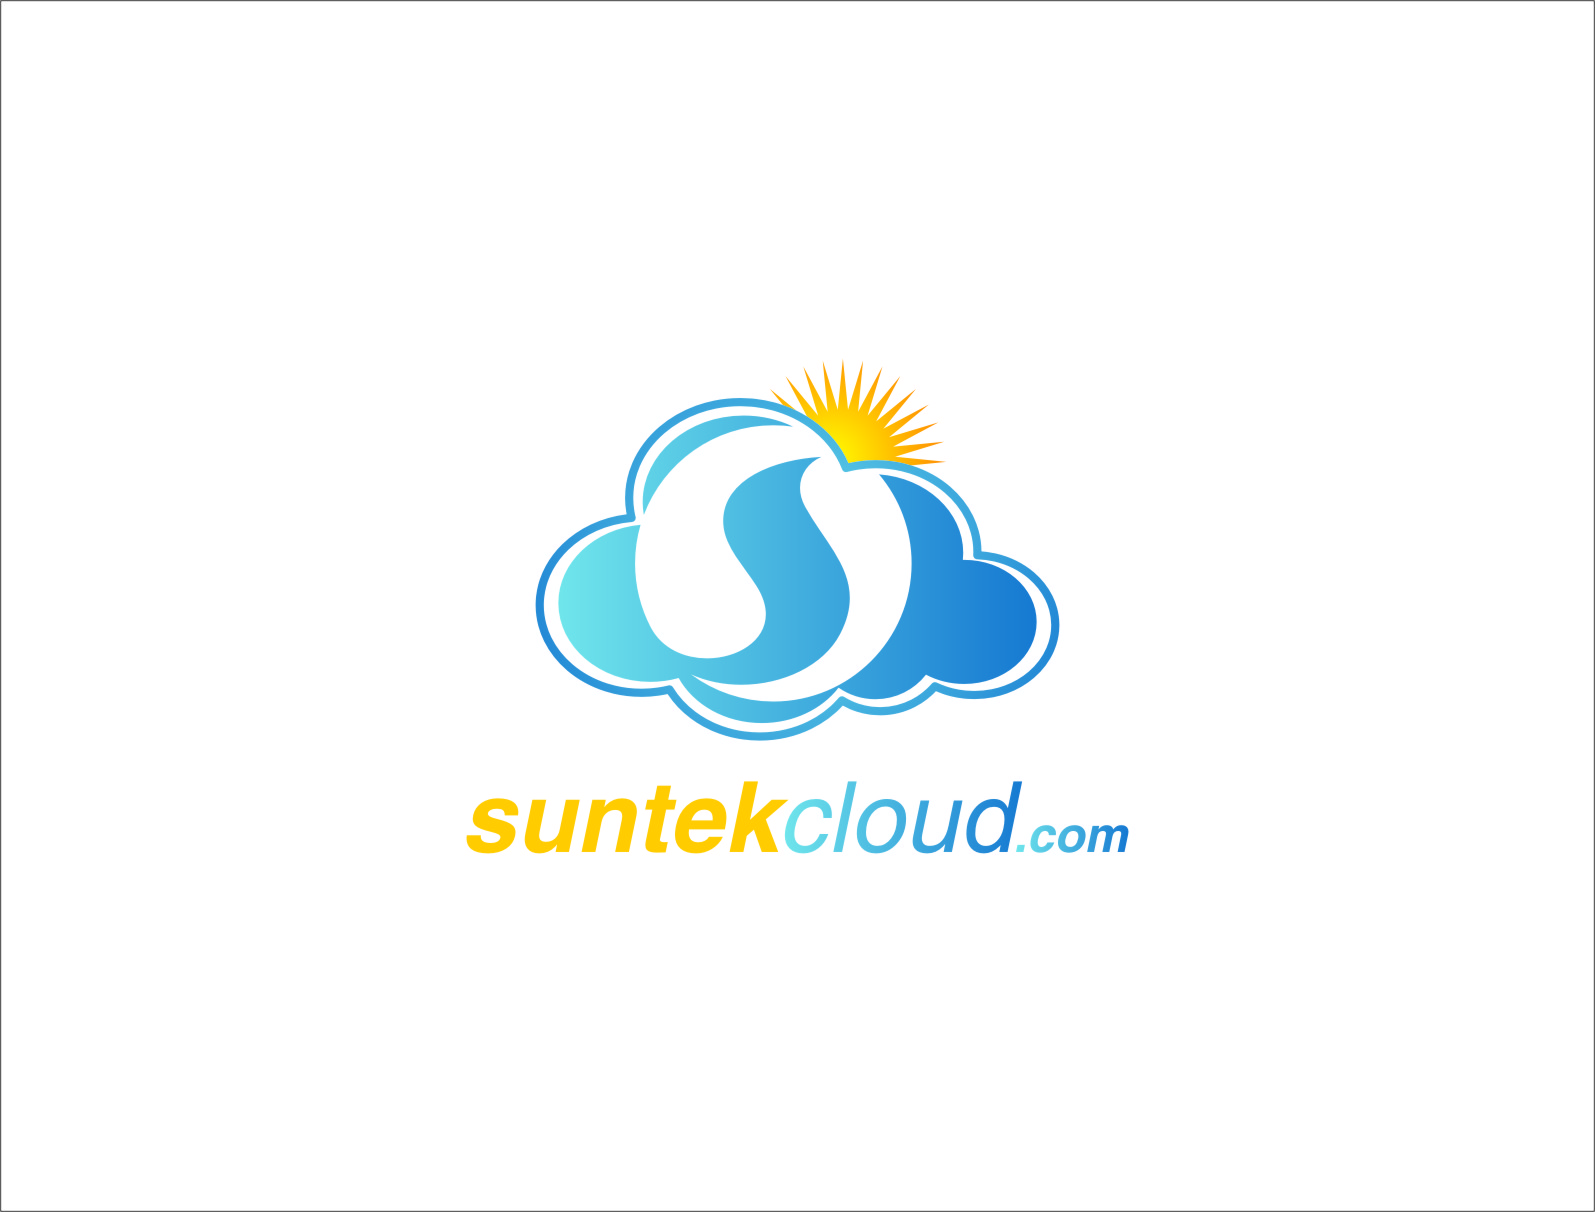 Logo Design by Ngepet_art - Entry No. 55 in the Logo Design Contest Imaginative Logo Design for suntekcloud.com.